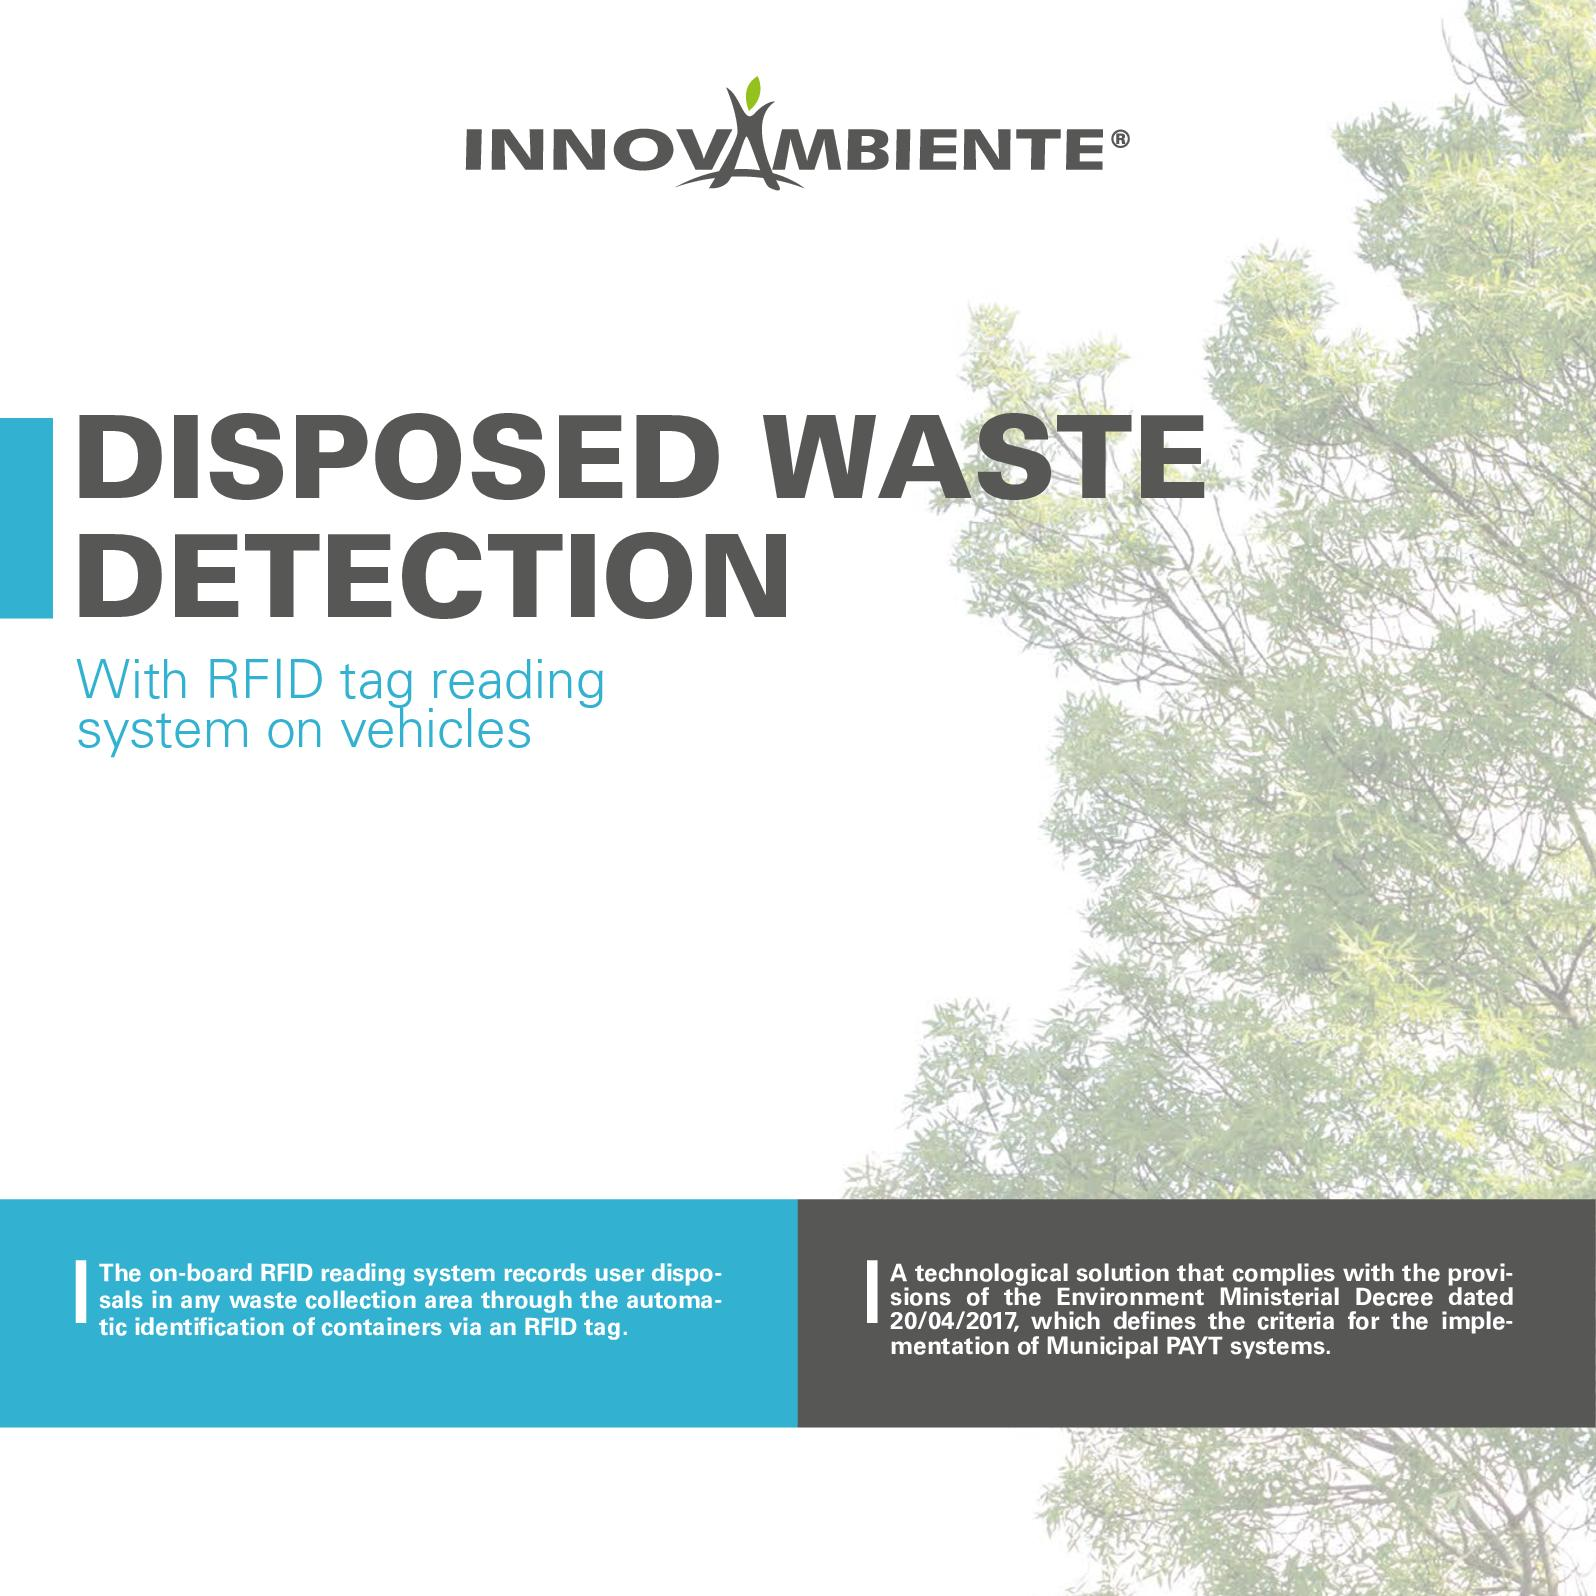 Calaméo - EN Disposed Waste Detection On Vehicles